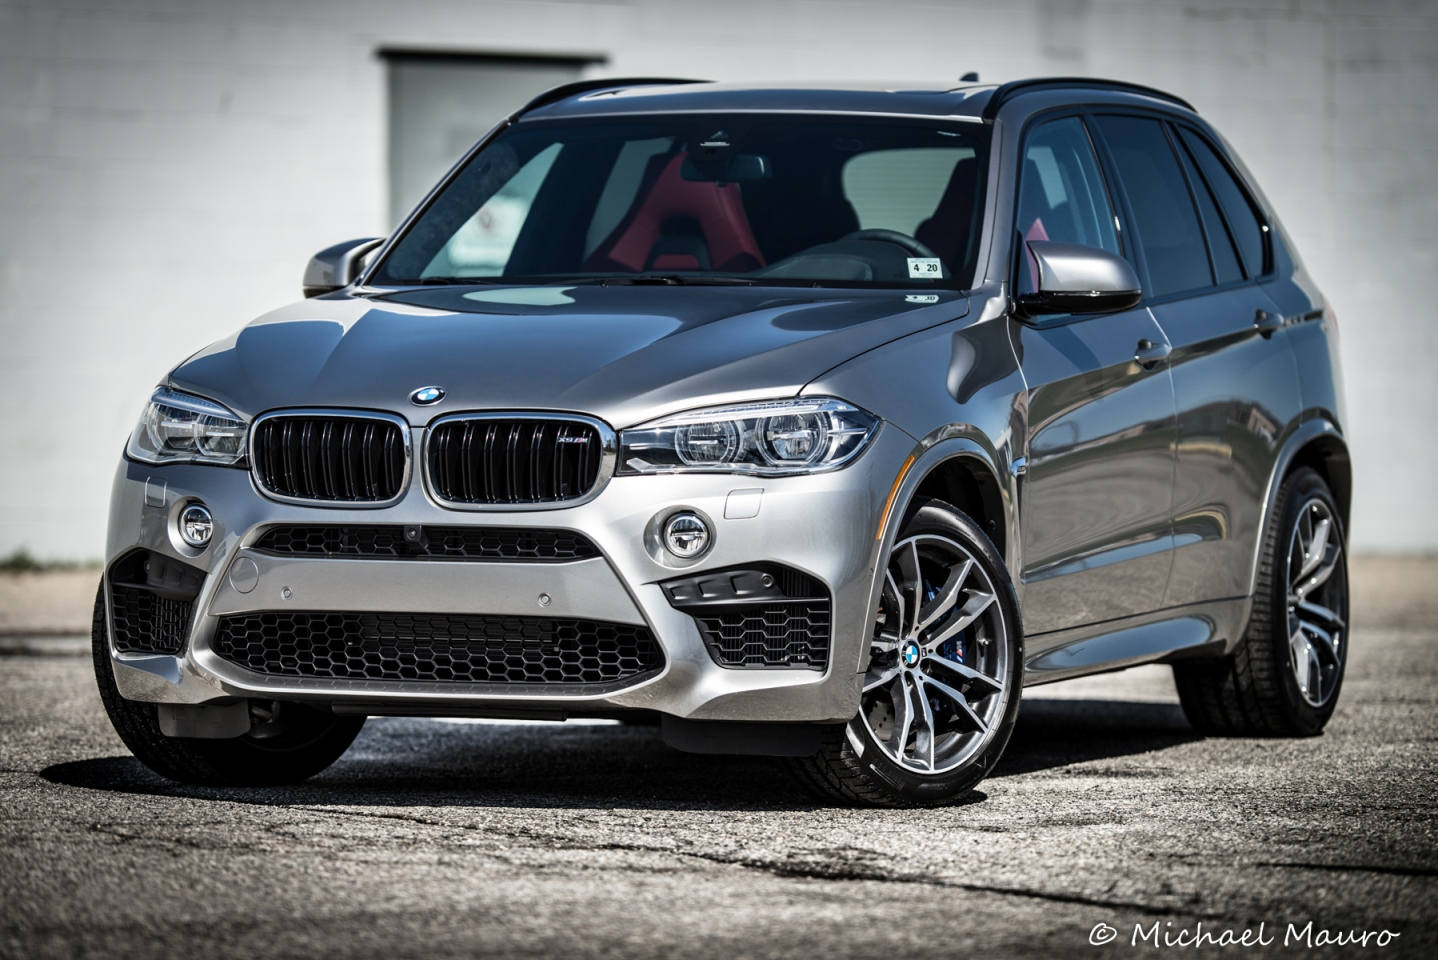 Quick Photoshoot Donington Grey X5m